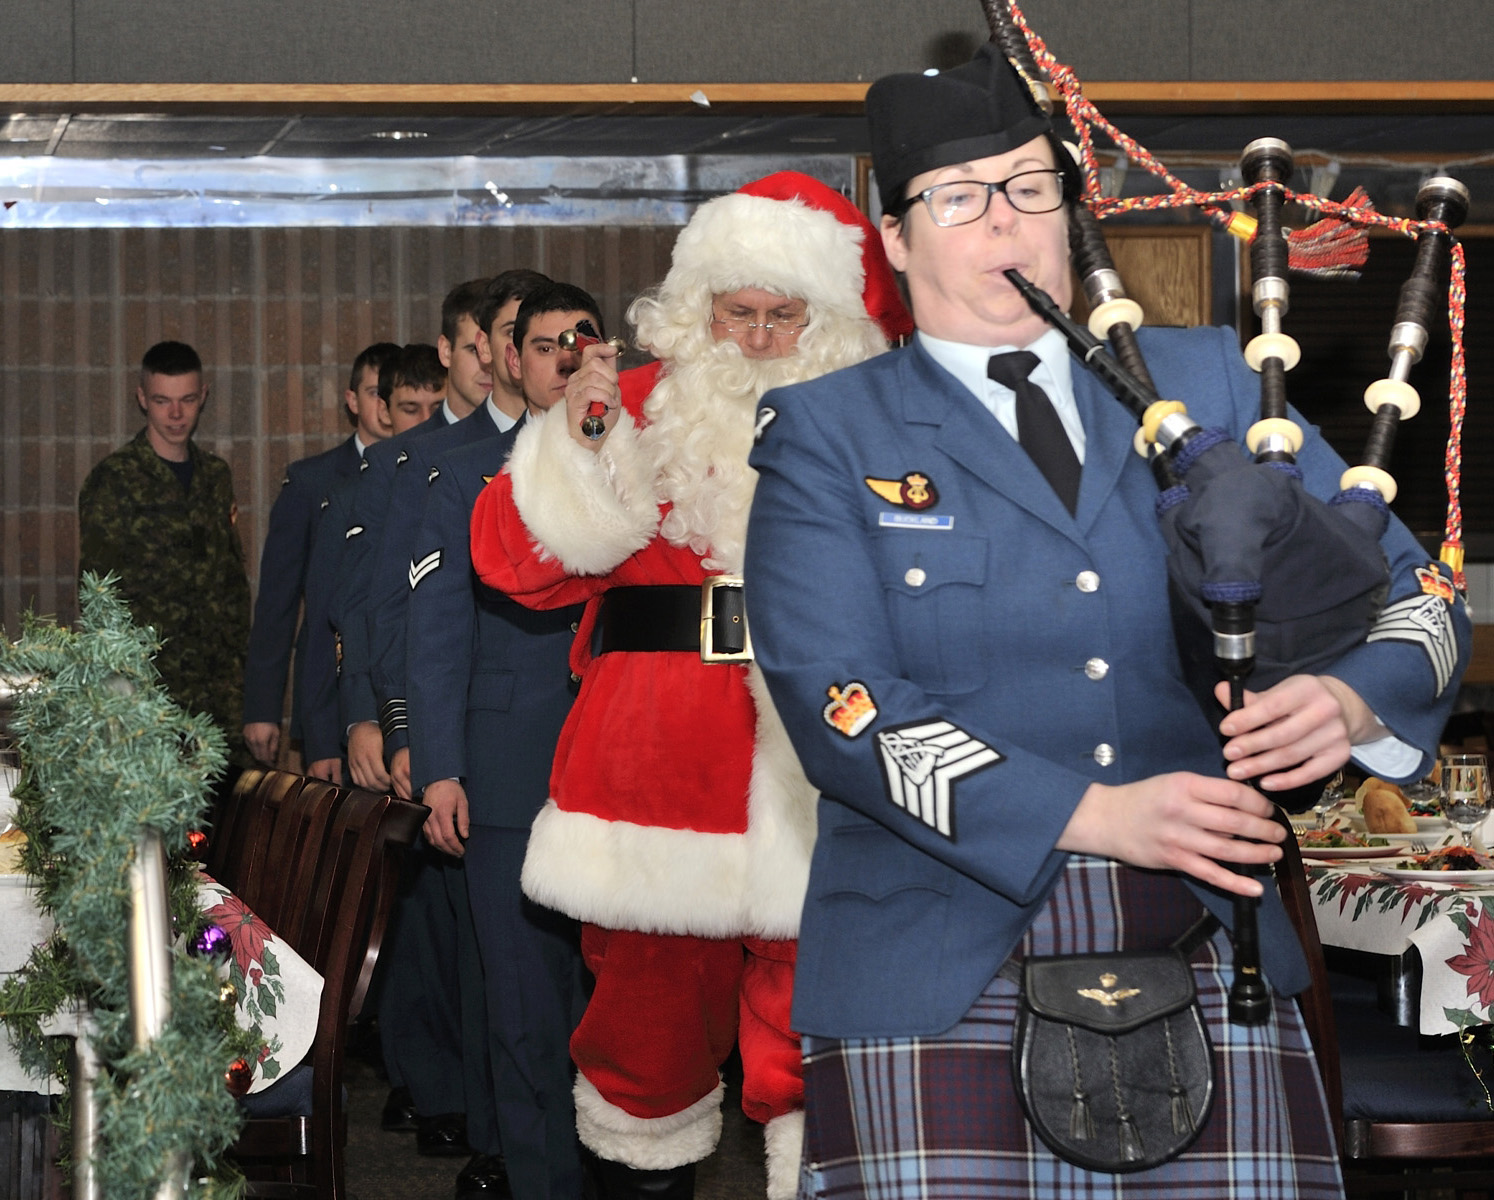 Santa Claus is piped into the 12 Wing Shearwater, Nova Scotia, Junior Ranks Christmas Dinner on December 16, 2016. PHOTO: Corporal Jennifer Robinson-McGuire, SW08-2016-0361-008